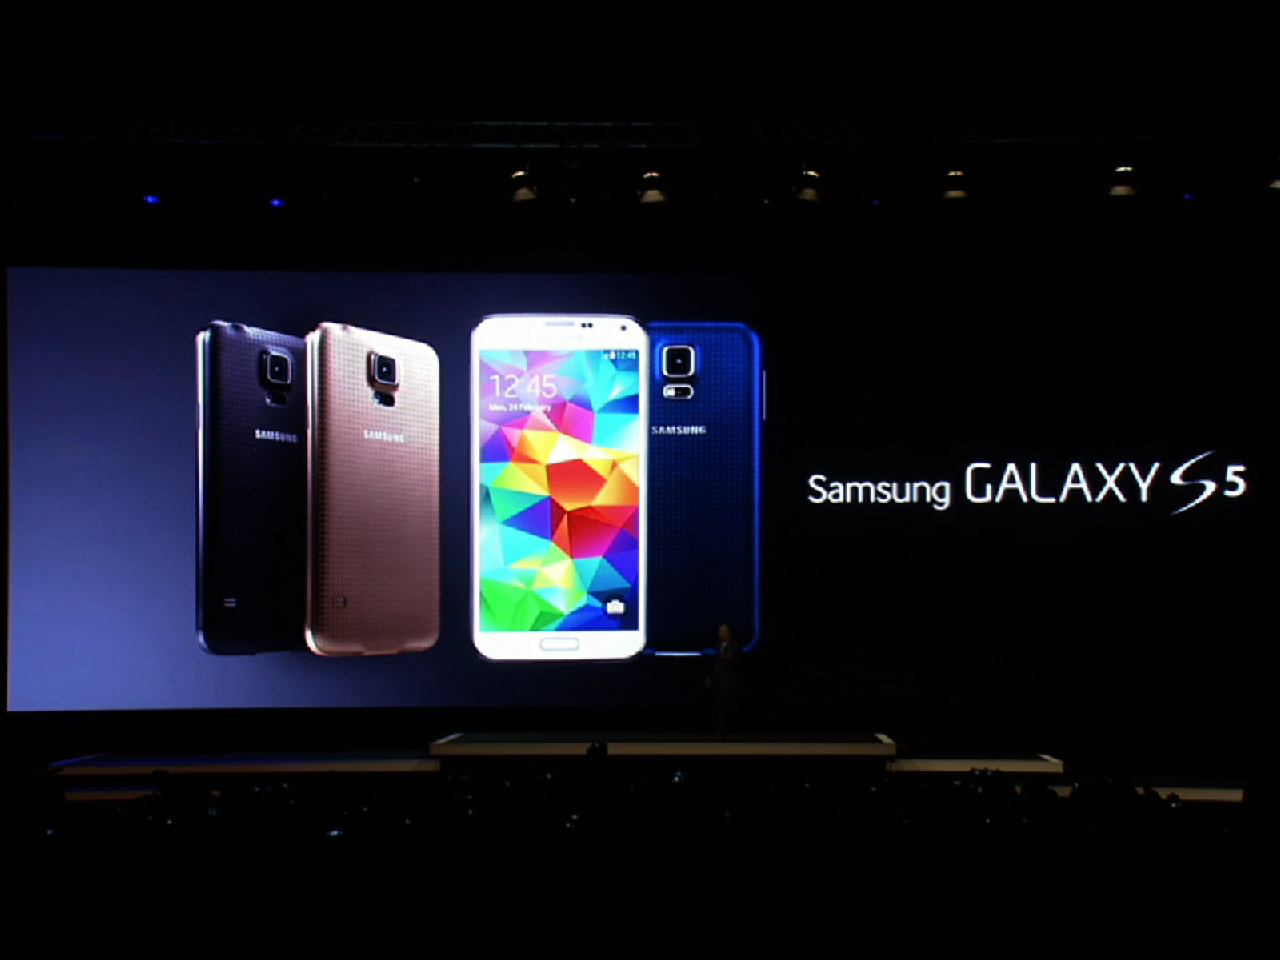 Video: Samsung introduces Galaxy S5 smartphone